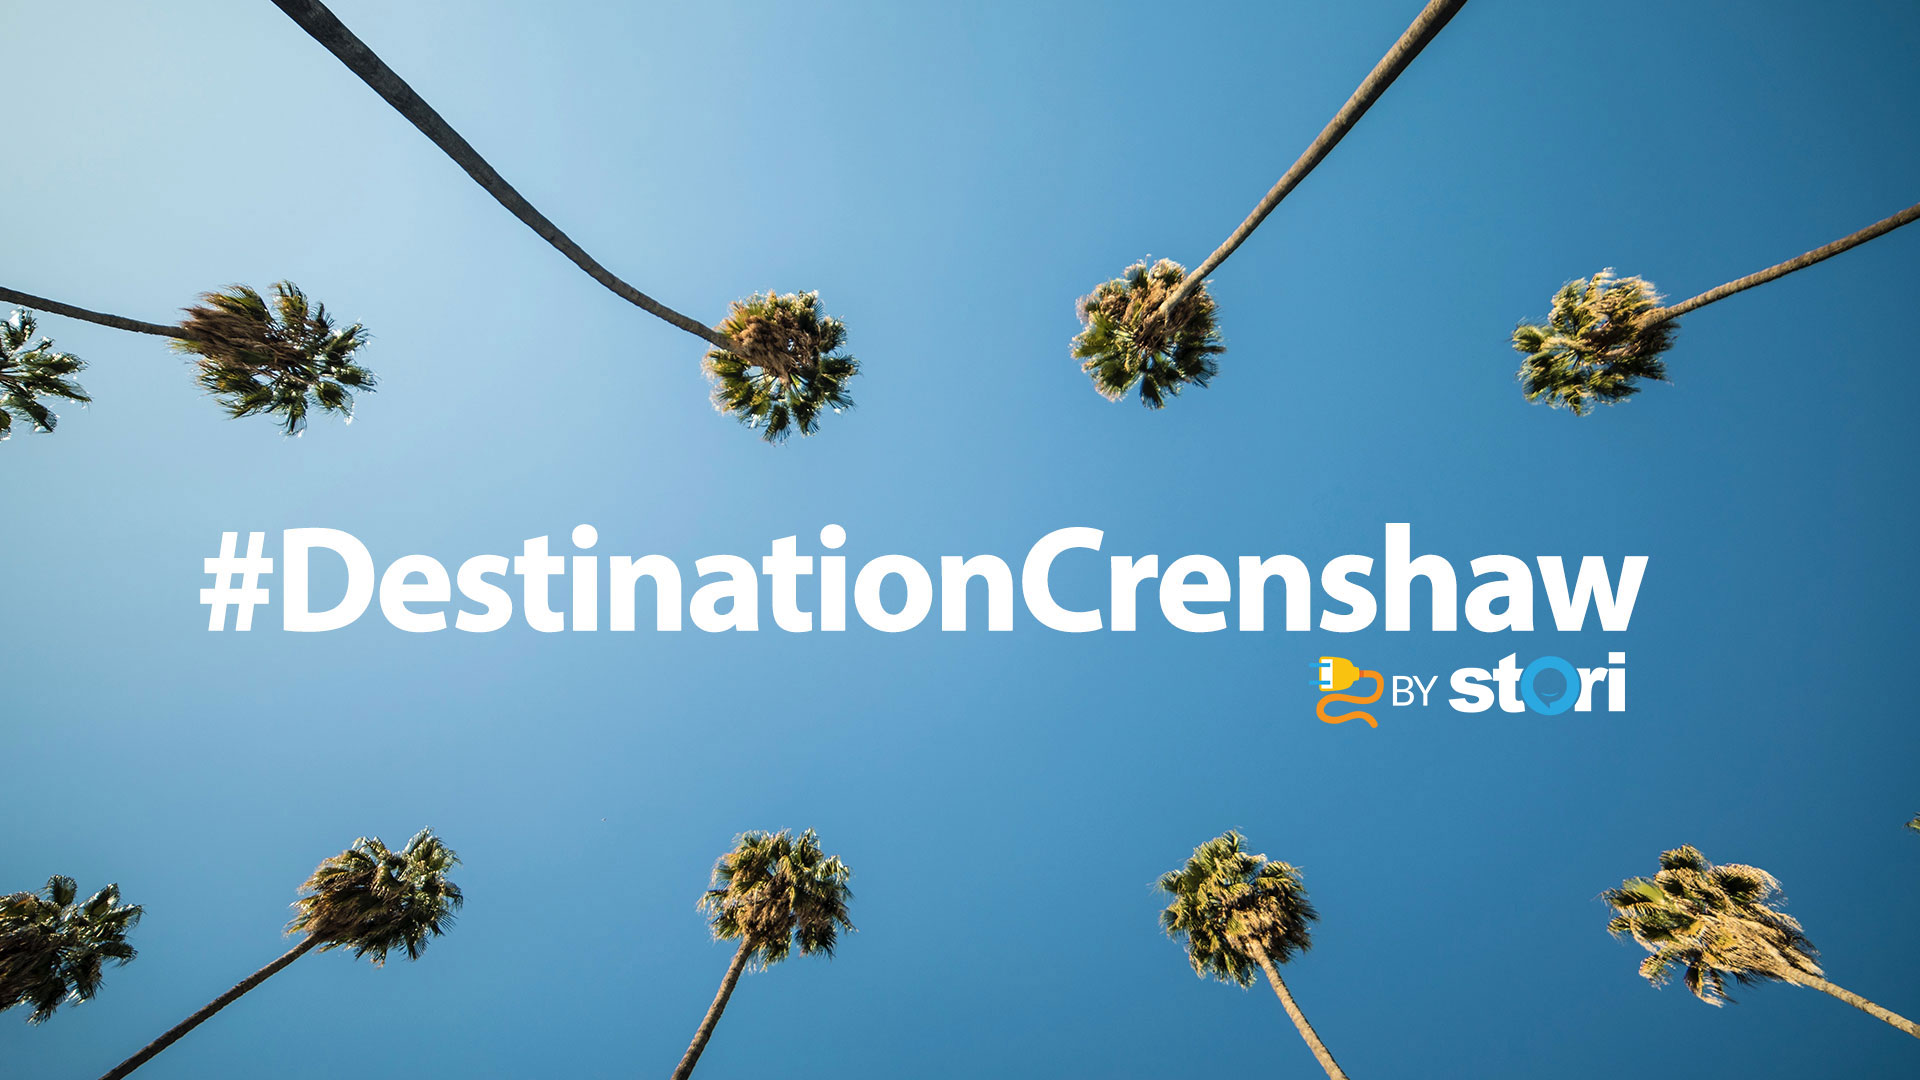 Destination Crenshaw